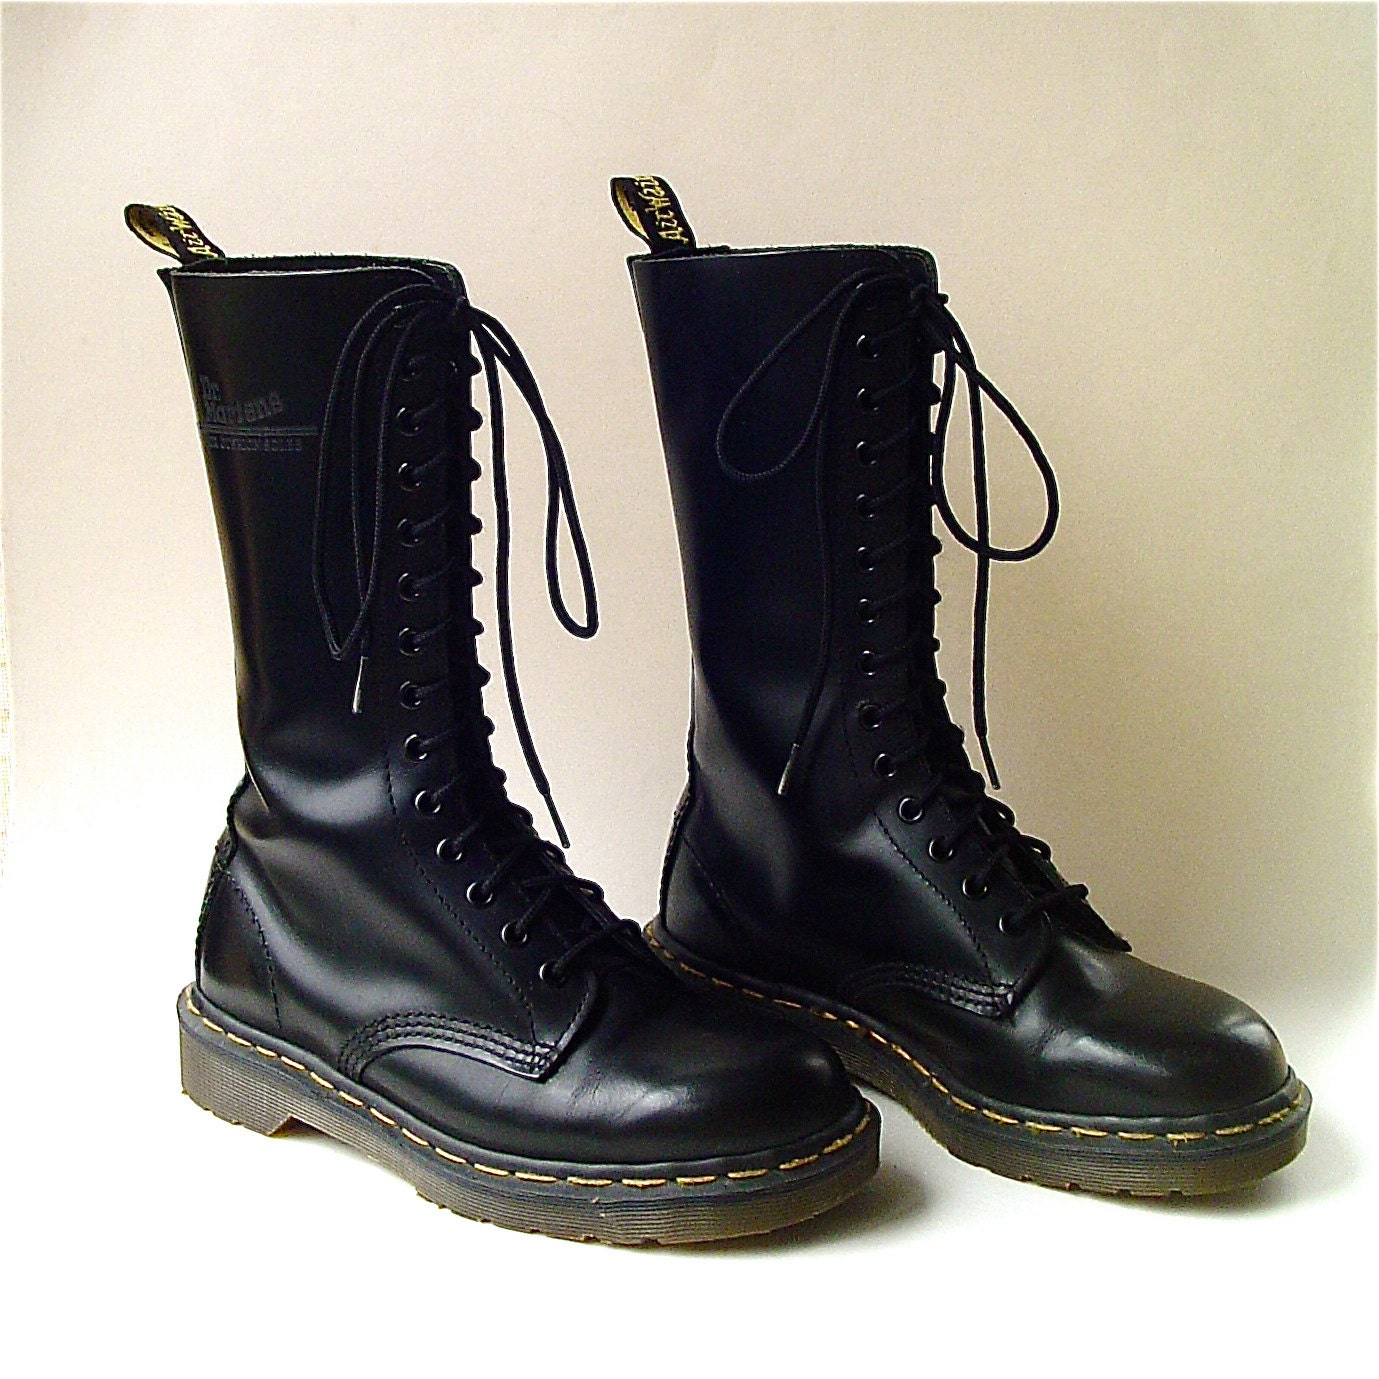 Vintage Doc Martens Air Wair Tall Black Leather Combat Boots